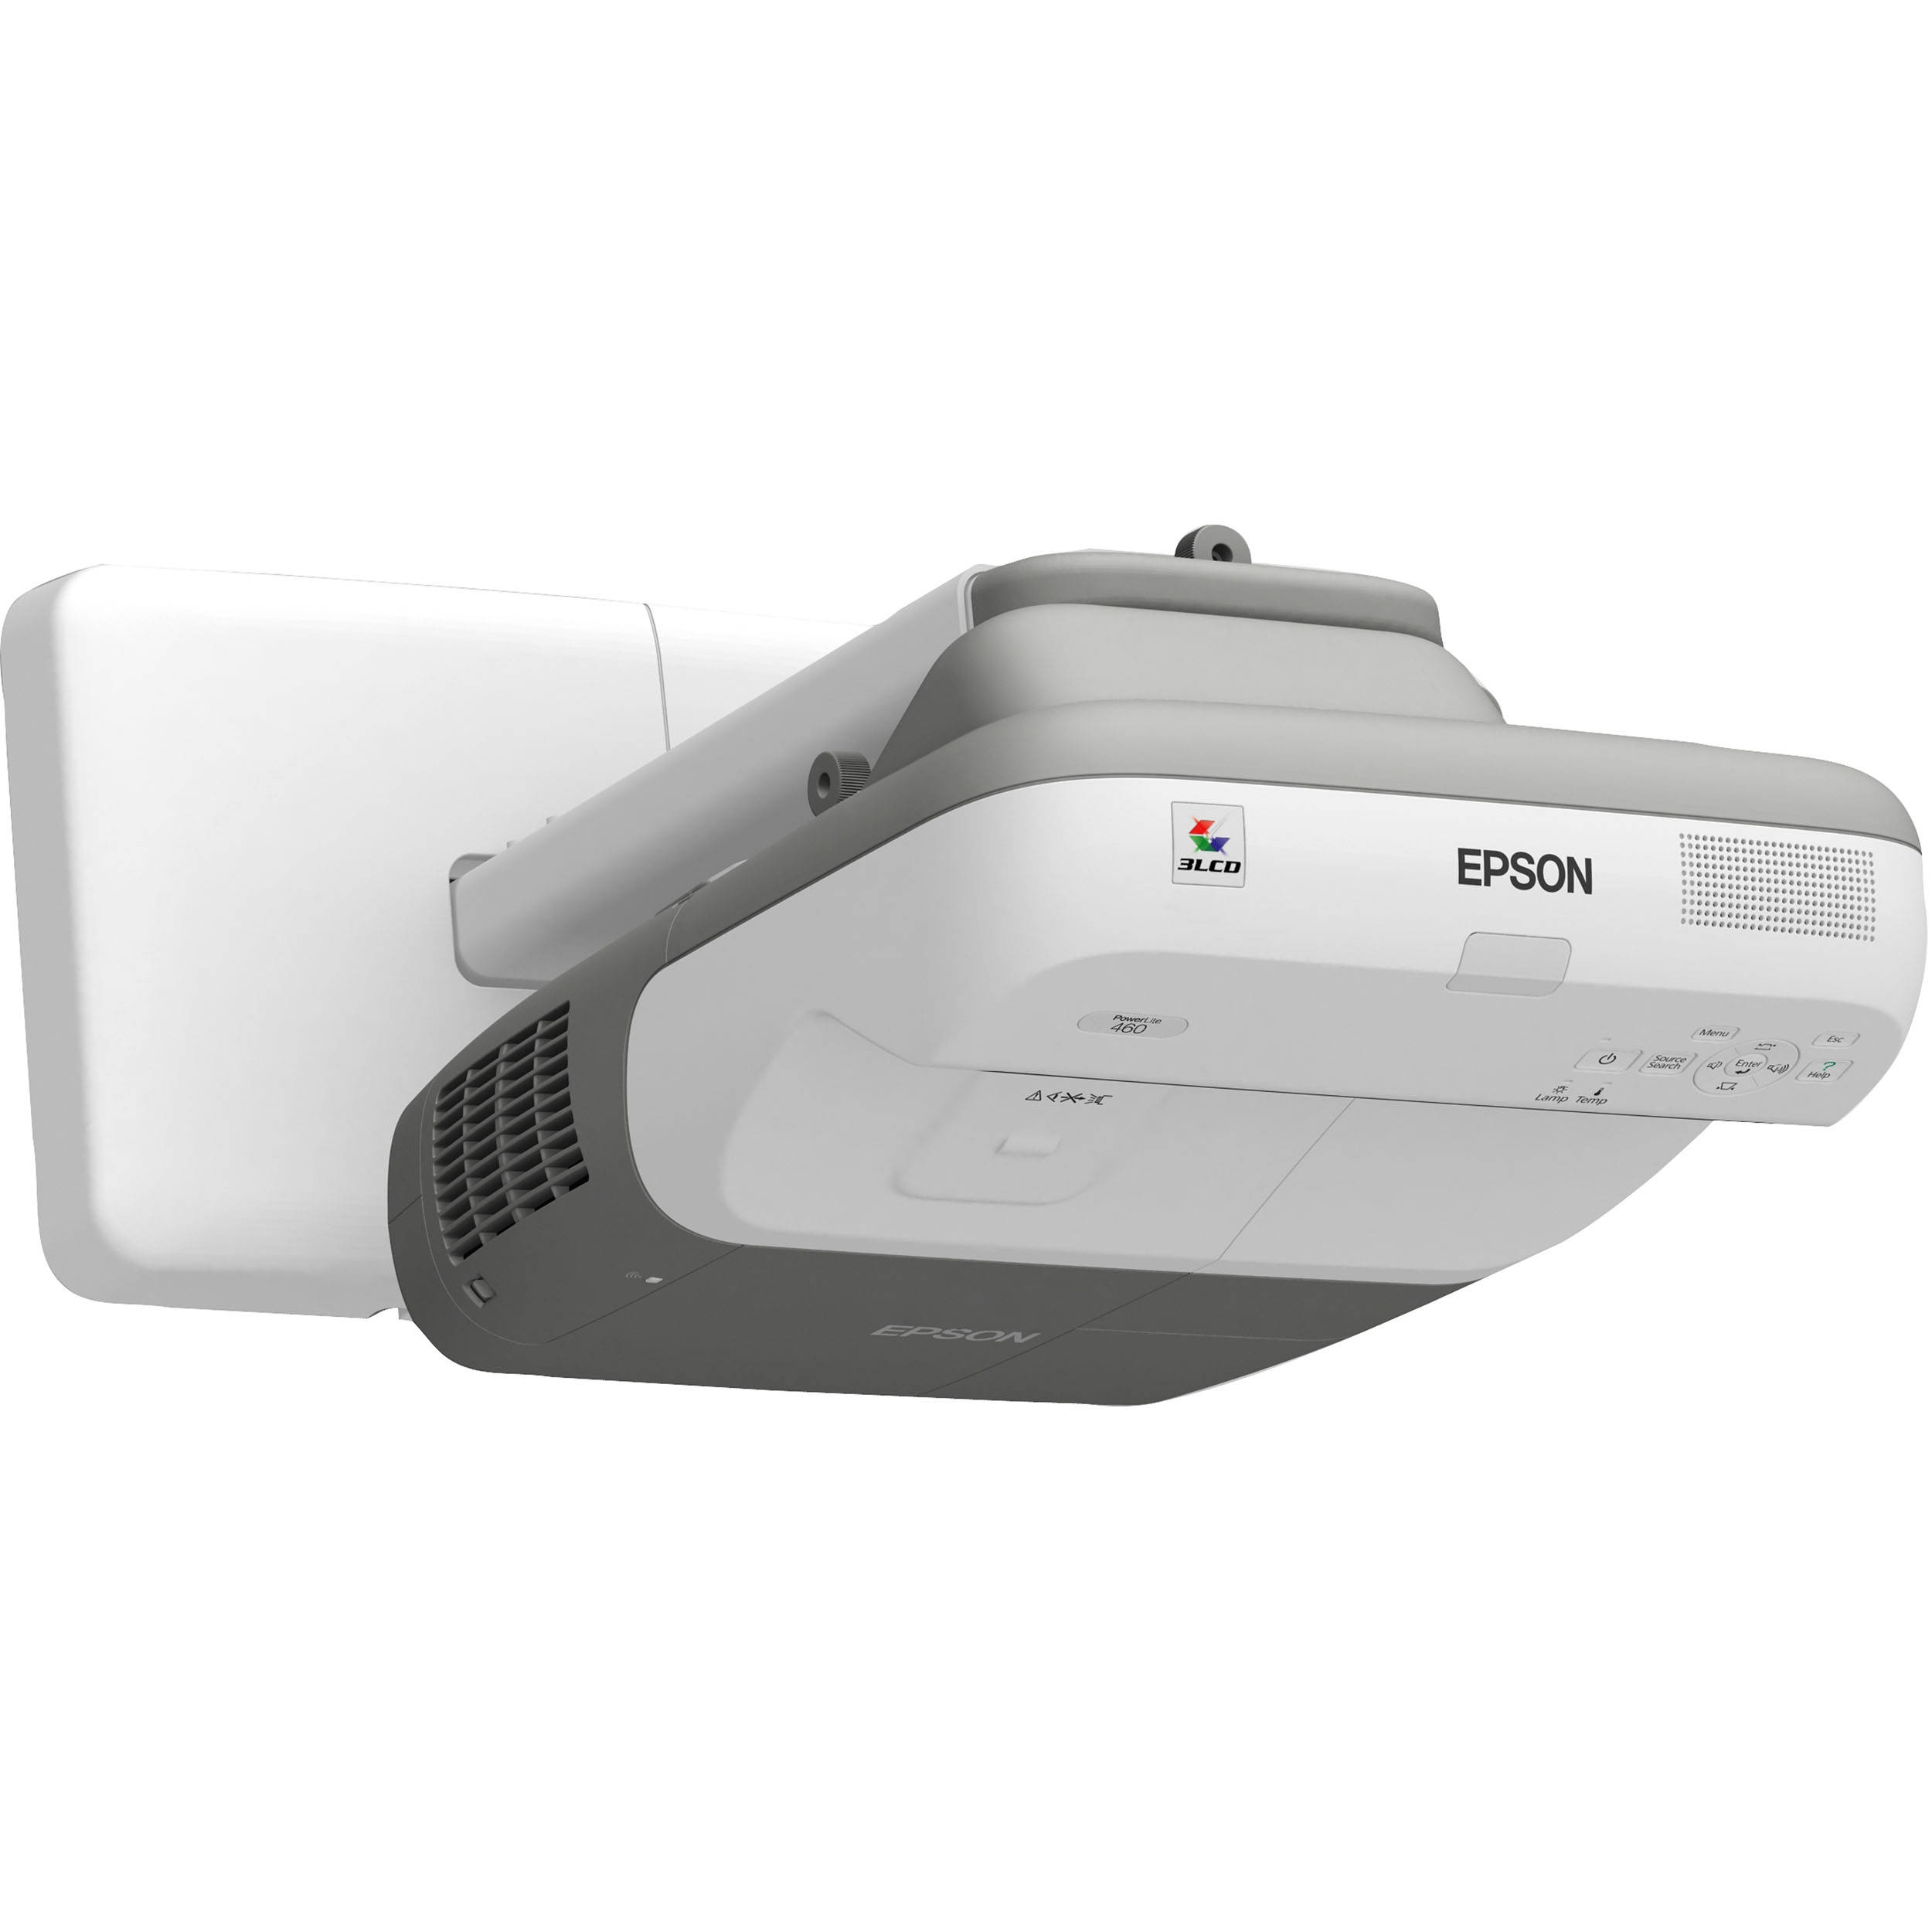 EPSON PROJECTOR 450WI DRIVER